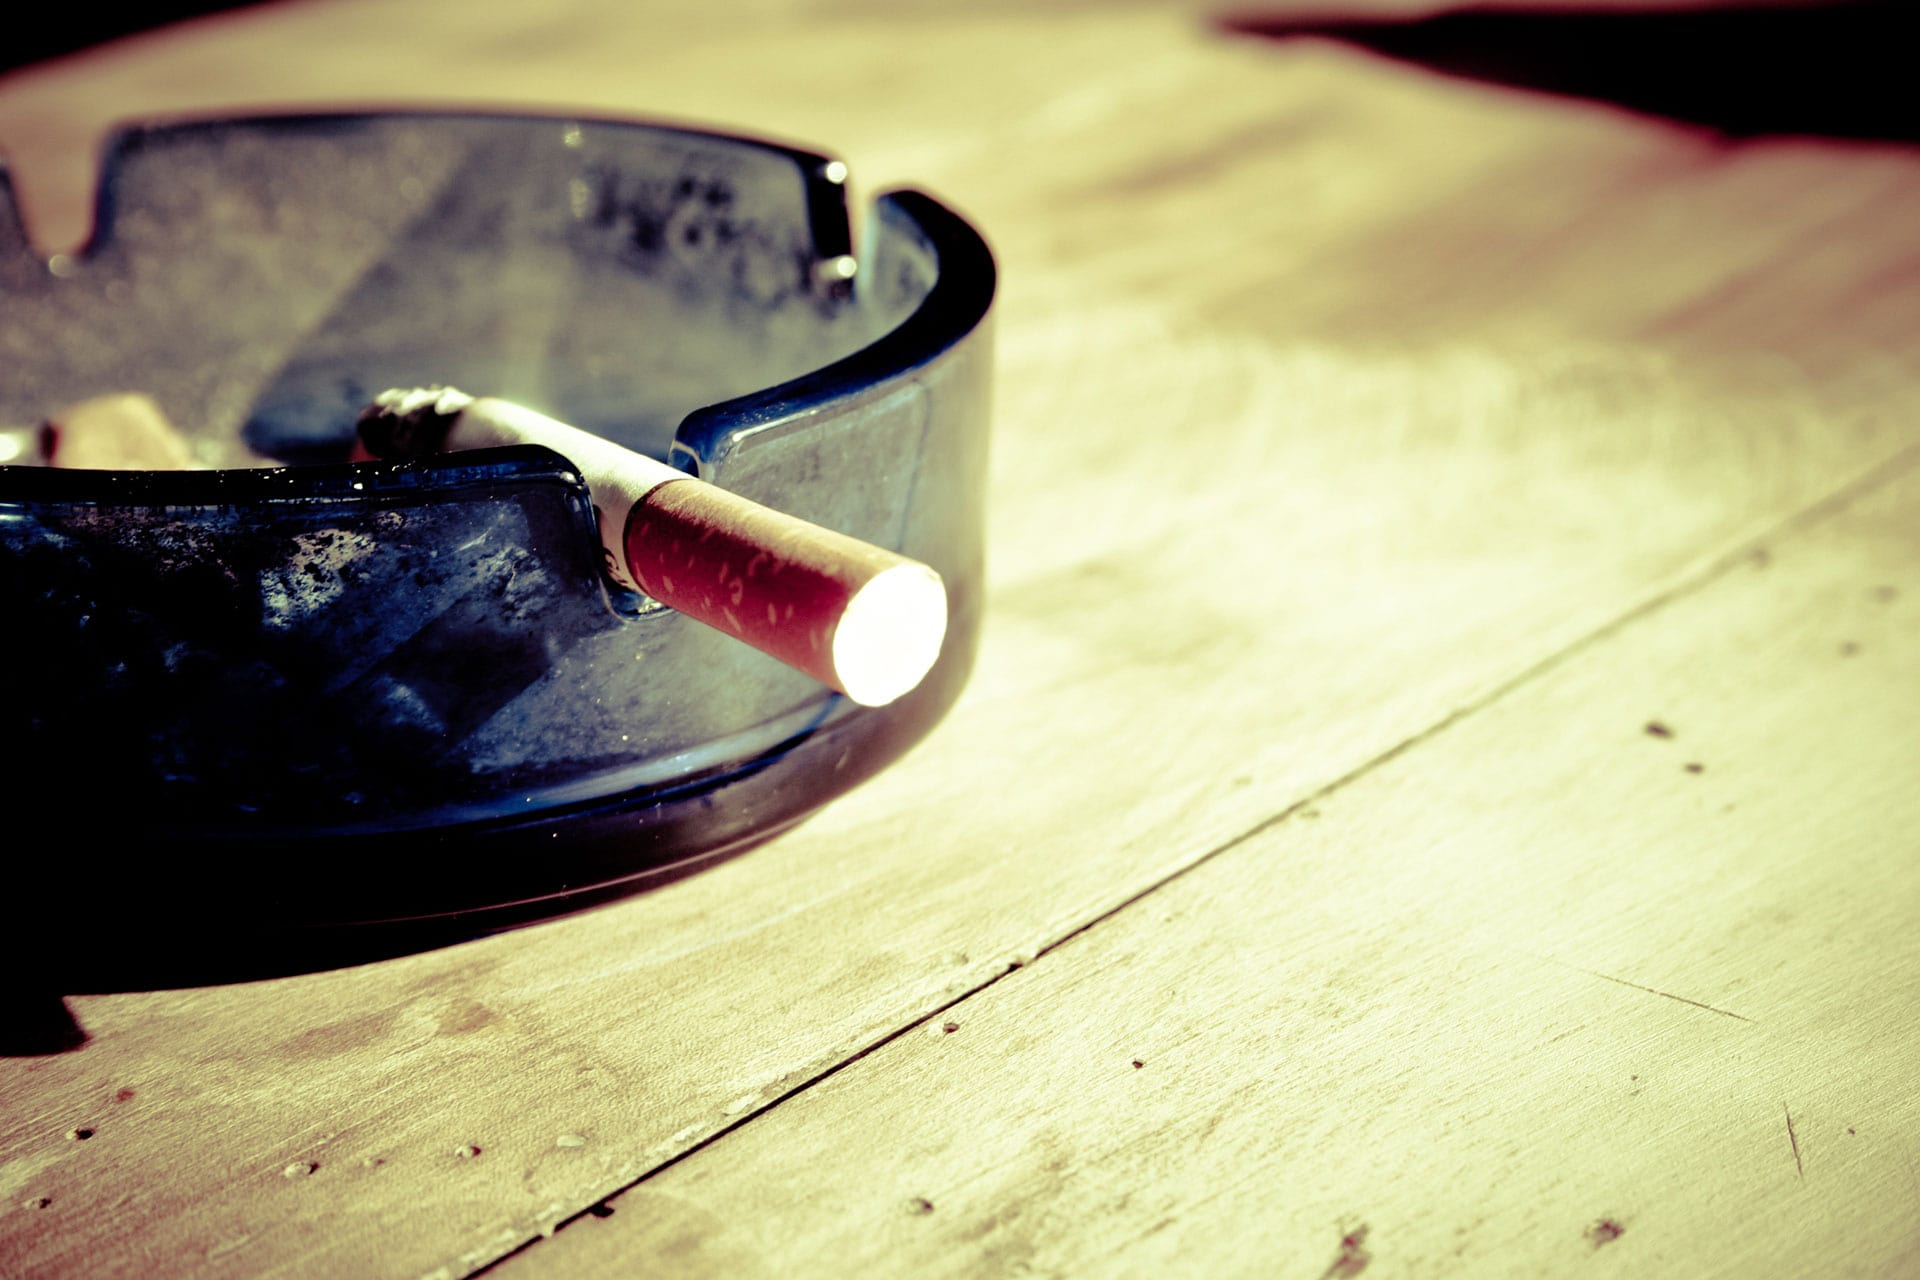 burning cigarette in ashtray